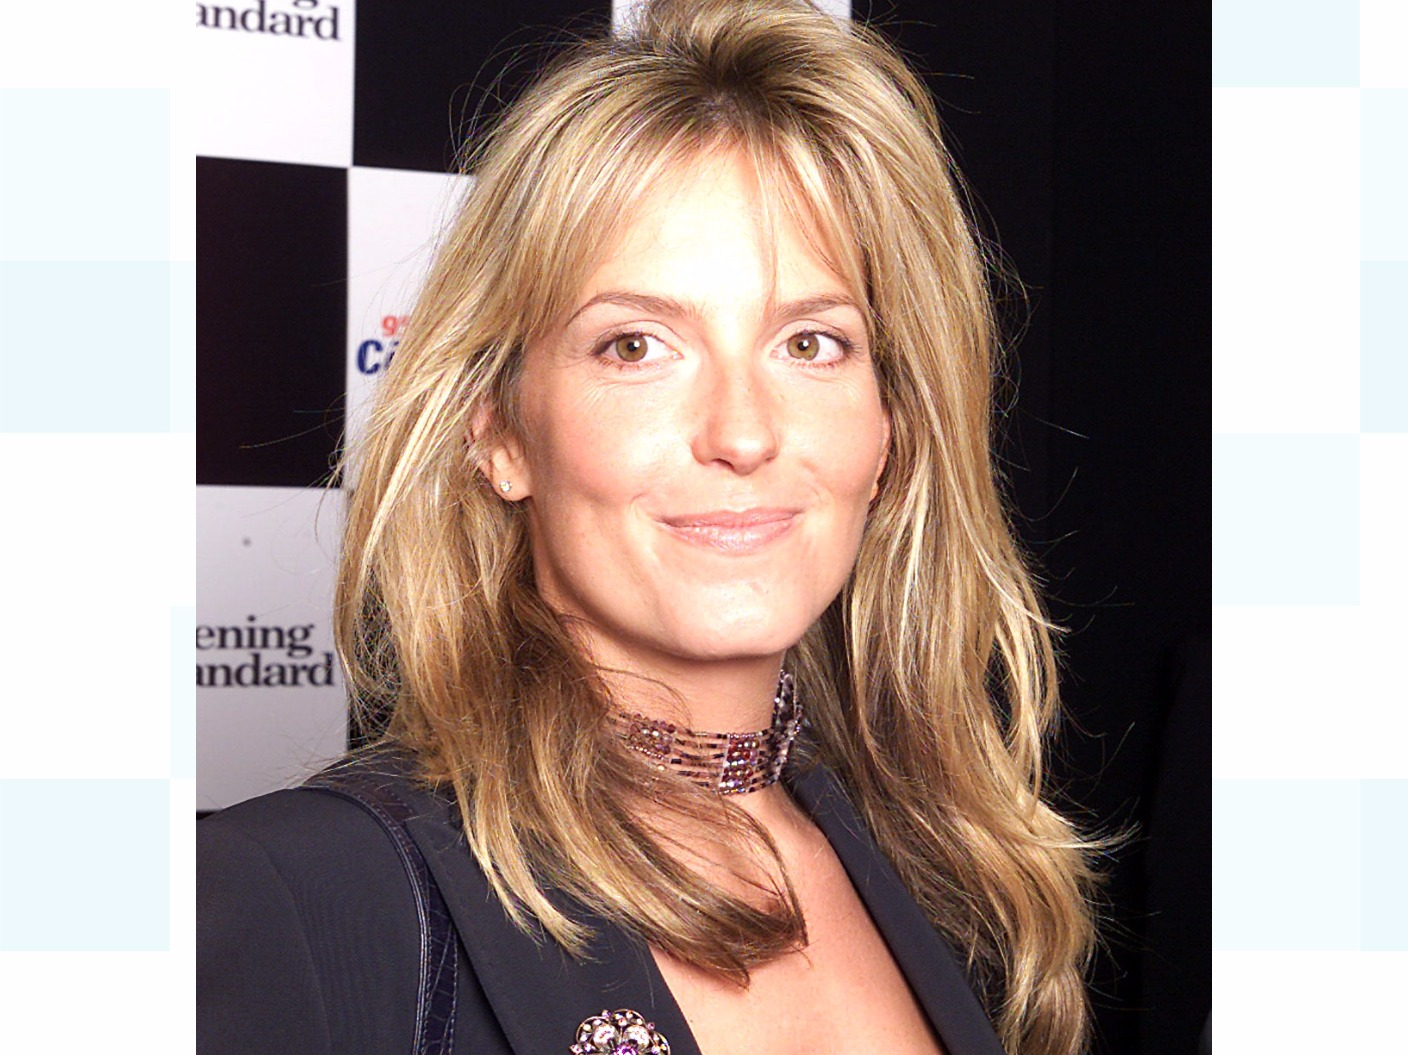 Penny Lancaster: Penny Lancaster Breaks Down In Tears As She Says She Was